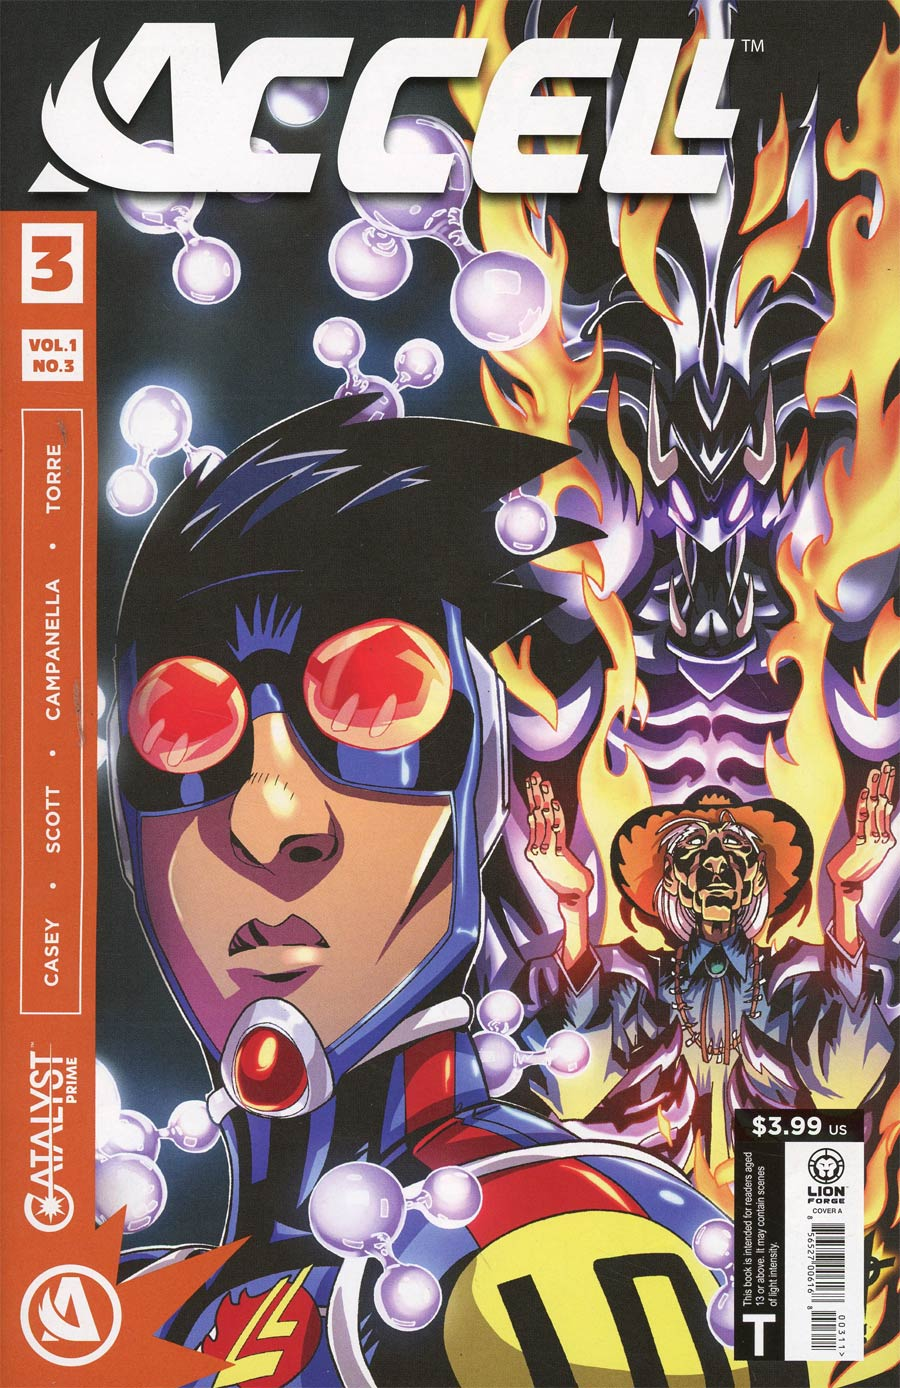 Catalyst Prime Accell #3